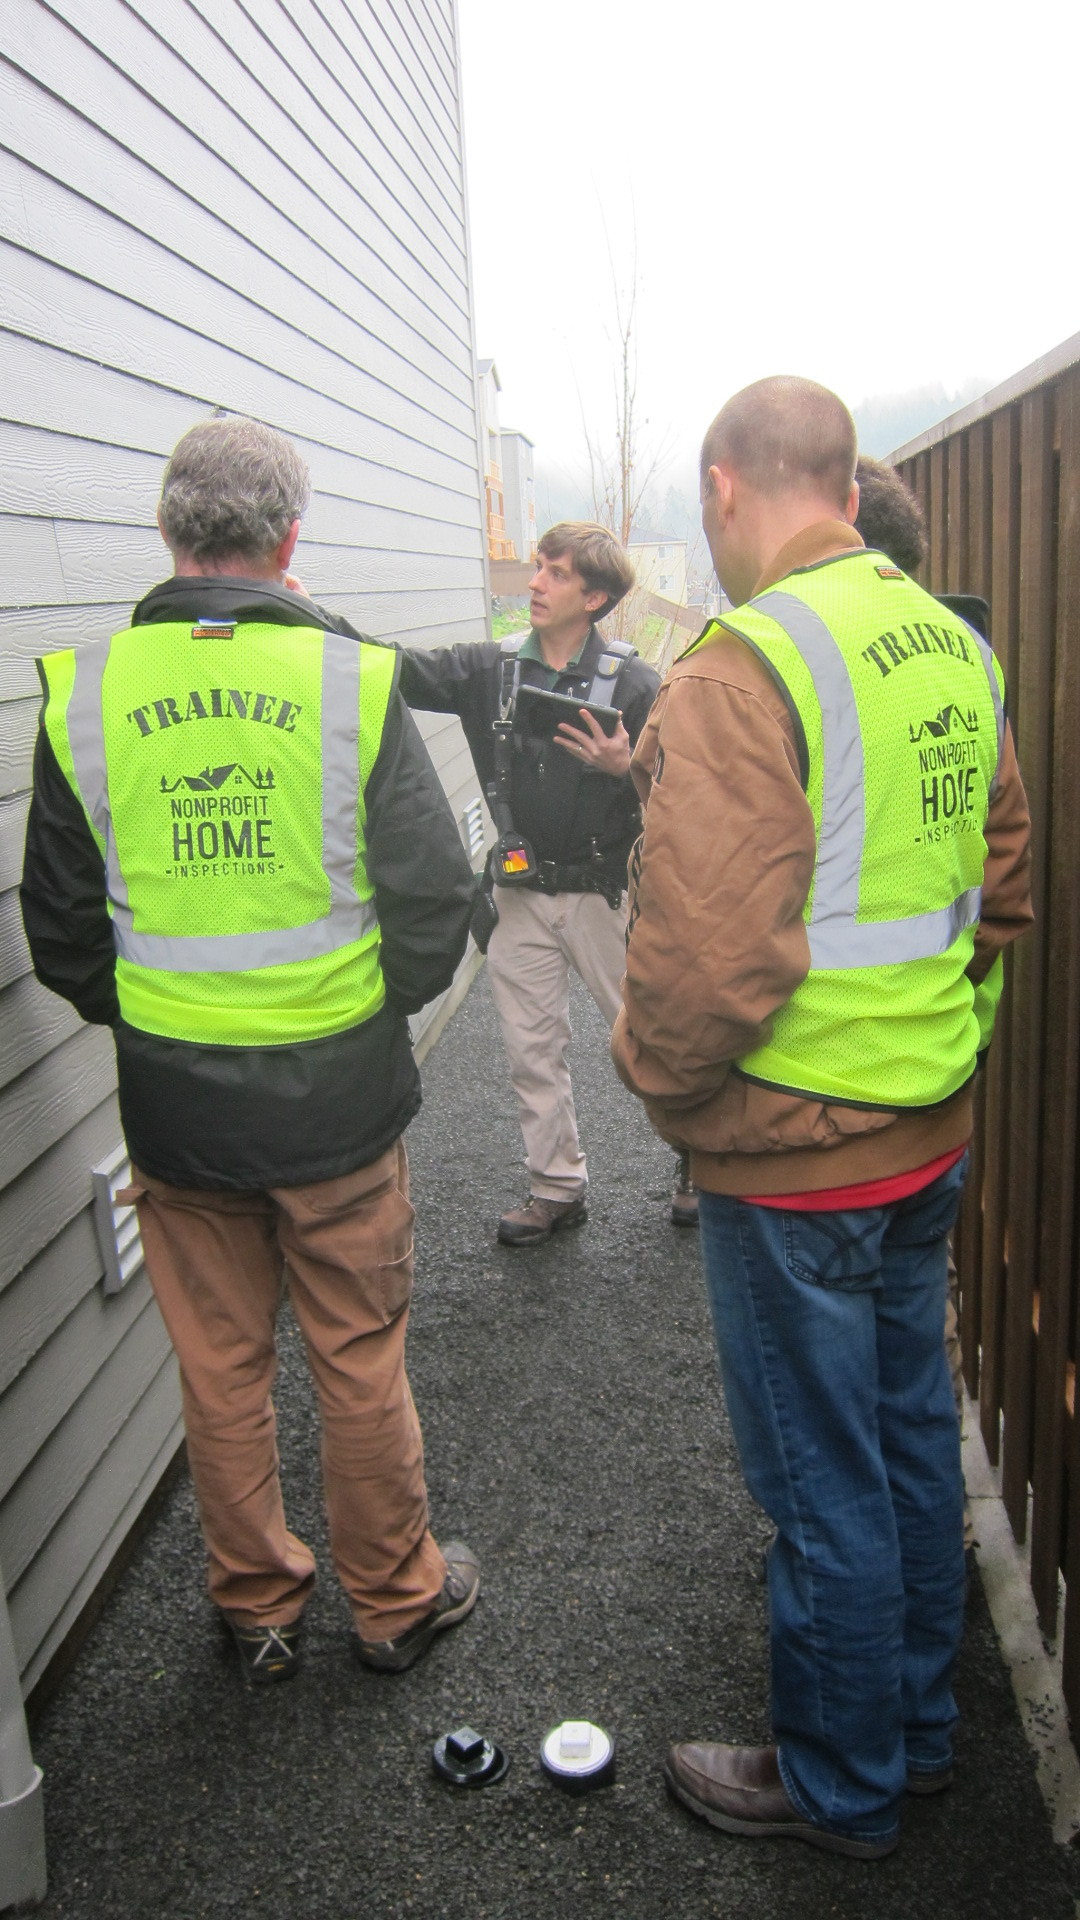 Fulfill Washington state's field training requirements by riding along with a licensed home inspector.